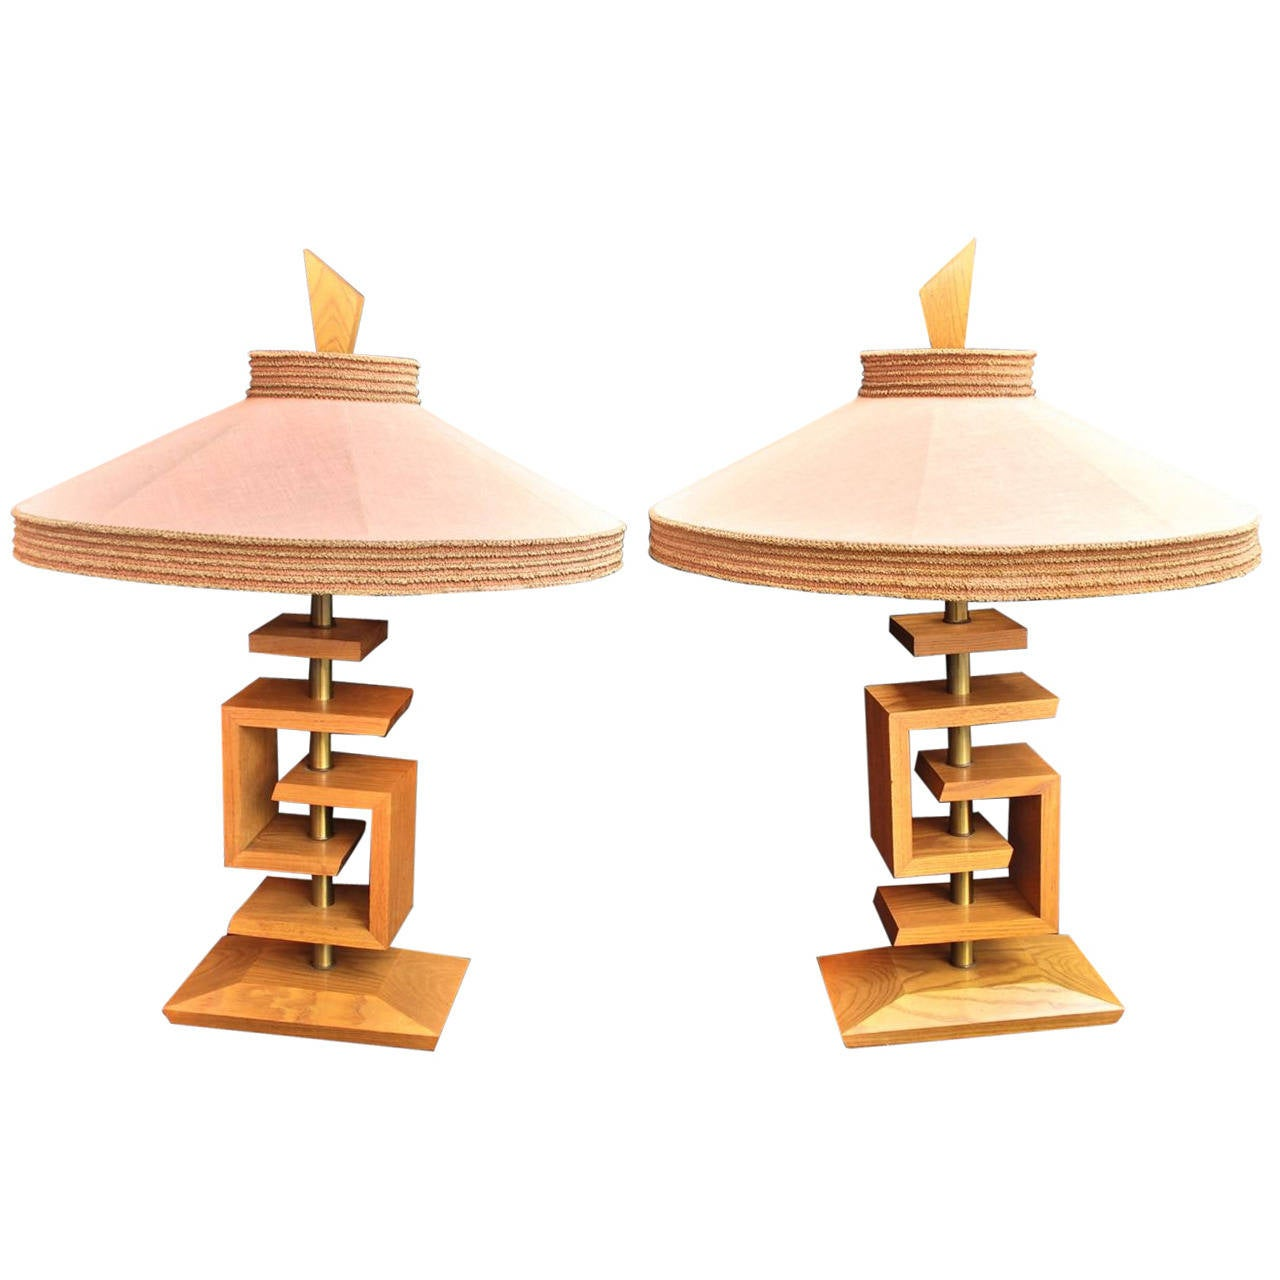 Beautiful Pair of Table Lamps by James Mont with Original Shade